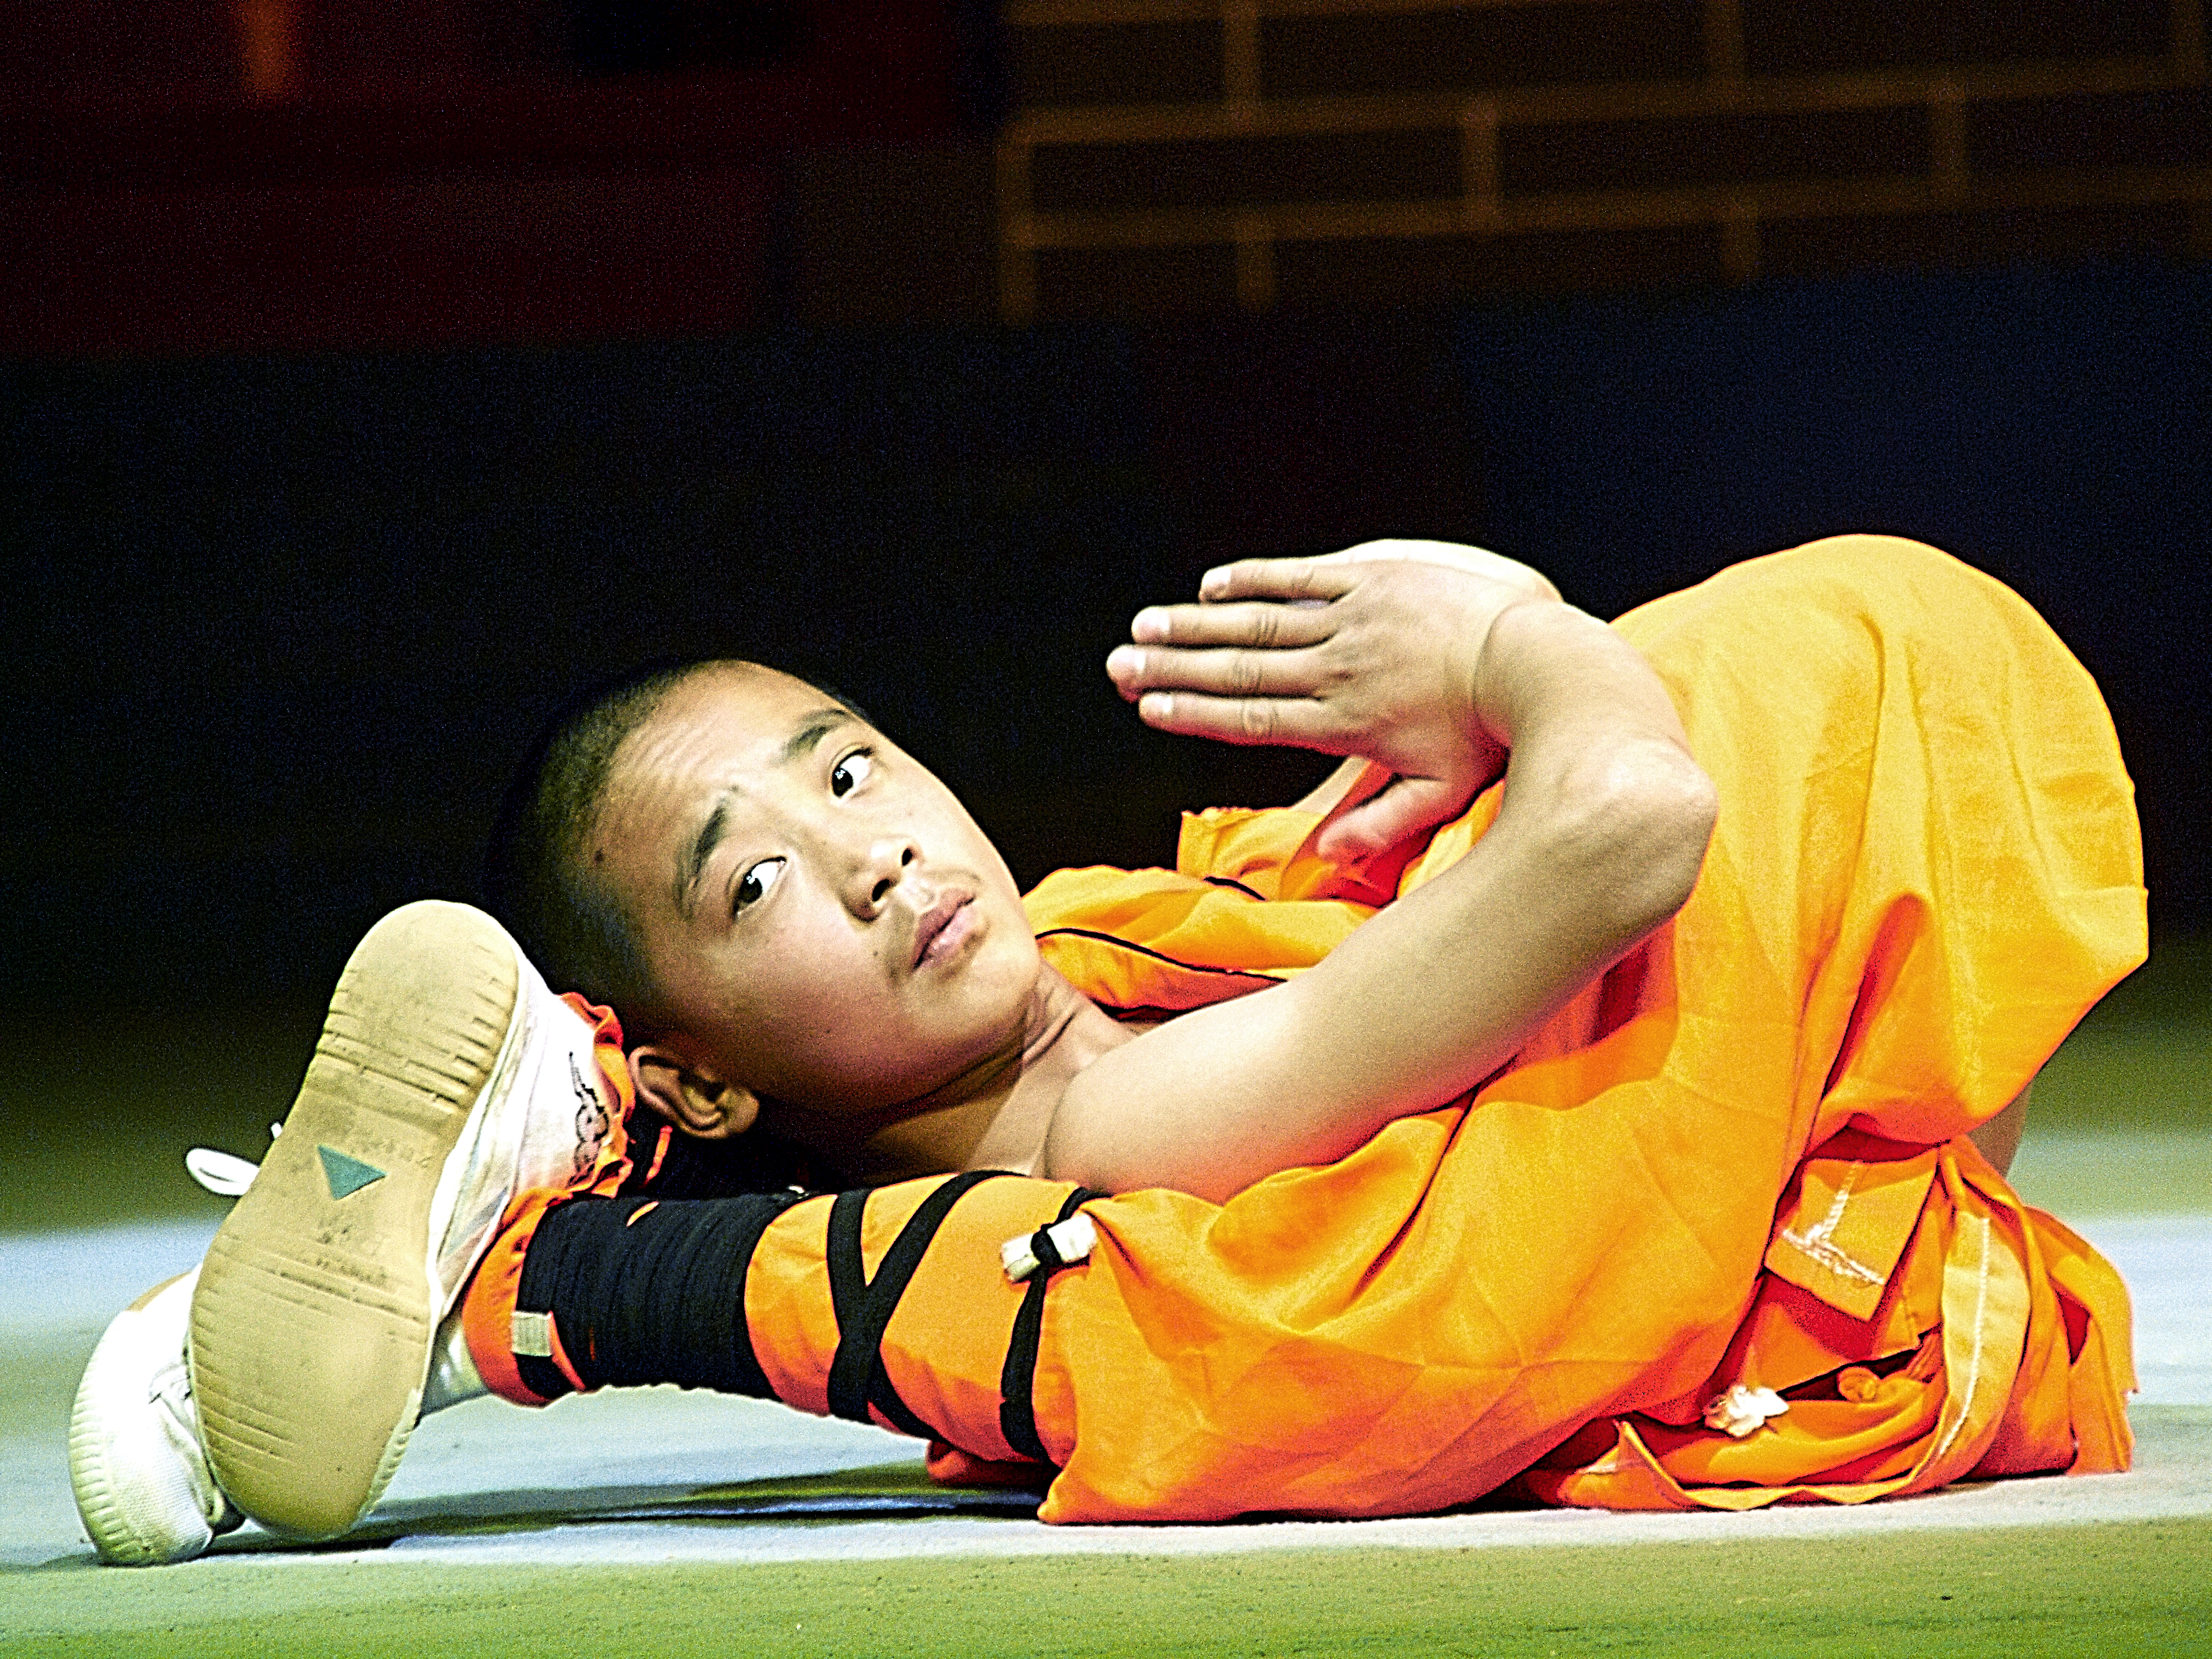 fu kung shaolin monk contortion kungfu flexibility ancient temple